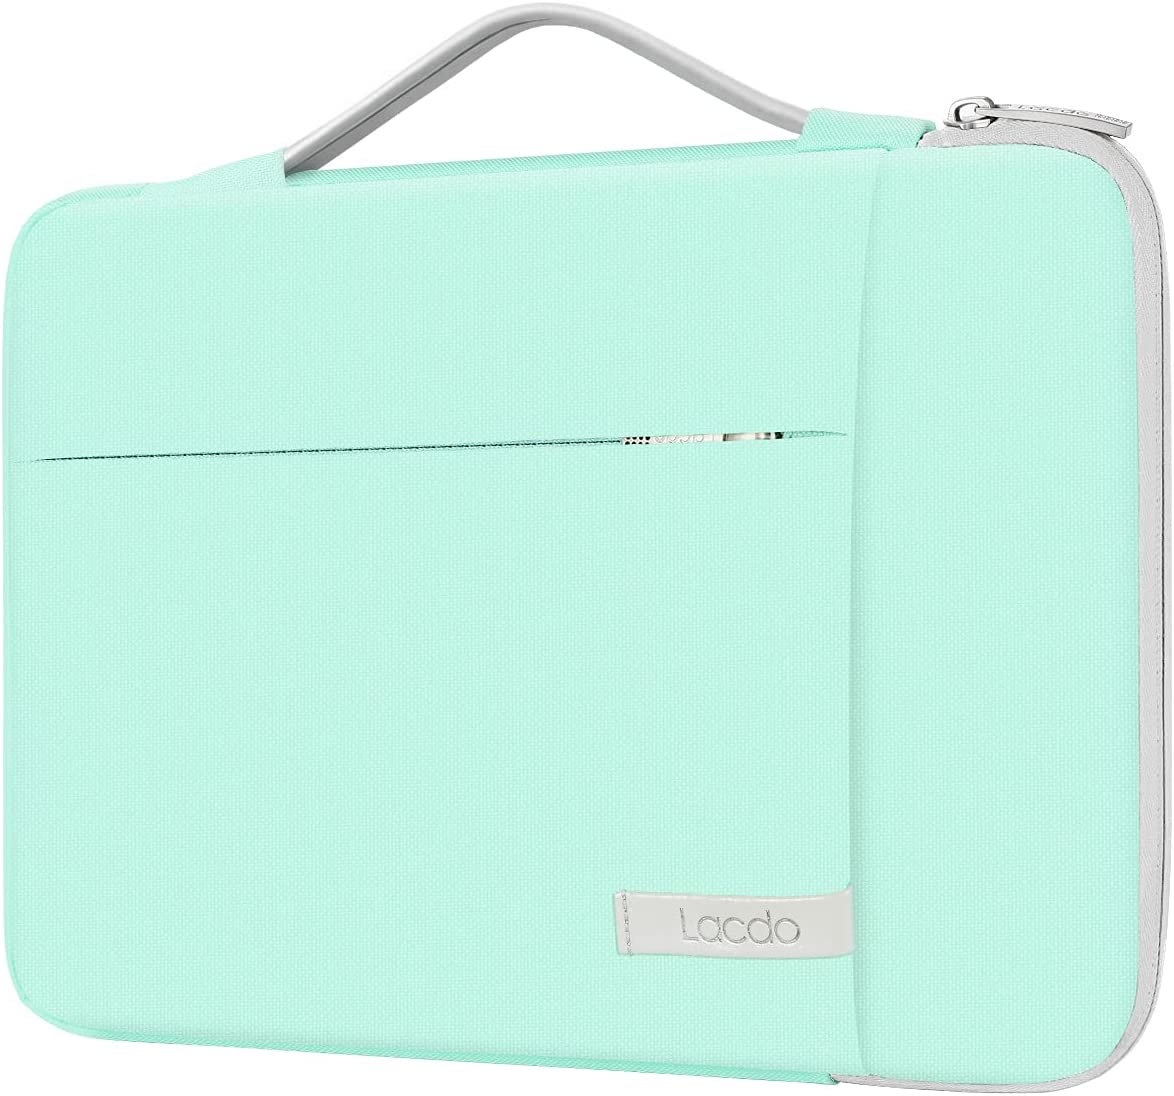 Lacdo 360° Protective 11 Inch Chromebook Case Handle Laptop Sleeve for 11.6 inch Samsung HP Stream / Acer Chromebook R 11 / ASUS C202 / MacBook Air 11.6 inch, Surface Pro X 7 6, C330 2-in-1 Bag, Green